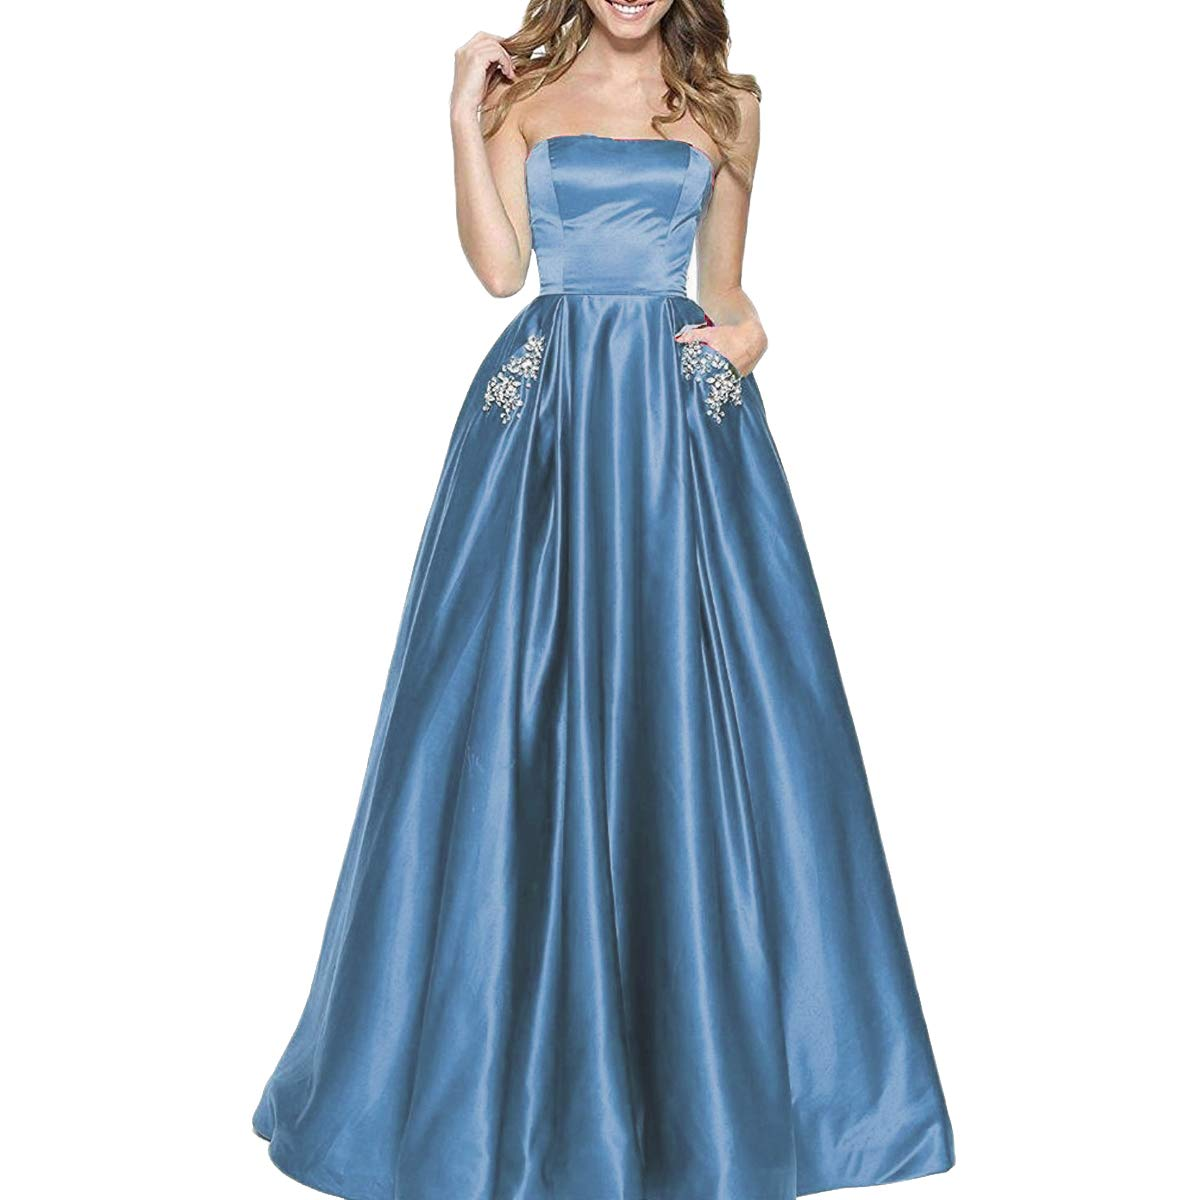 Ink bluee TTYbridal Women's ALine Strapless Beaded Prom Dresses Long Satin Homecoming Party Gown with Pockets